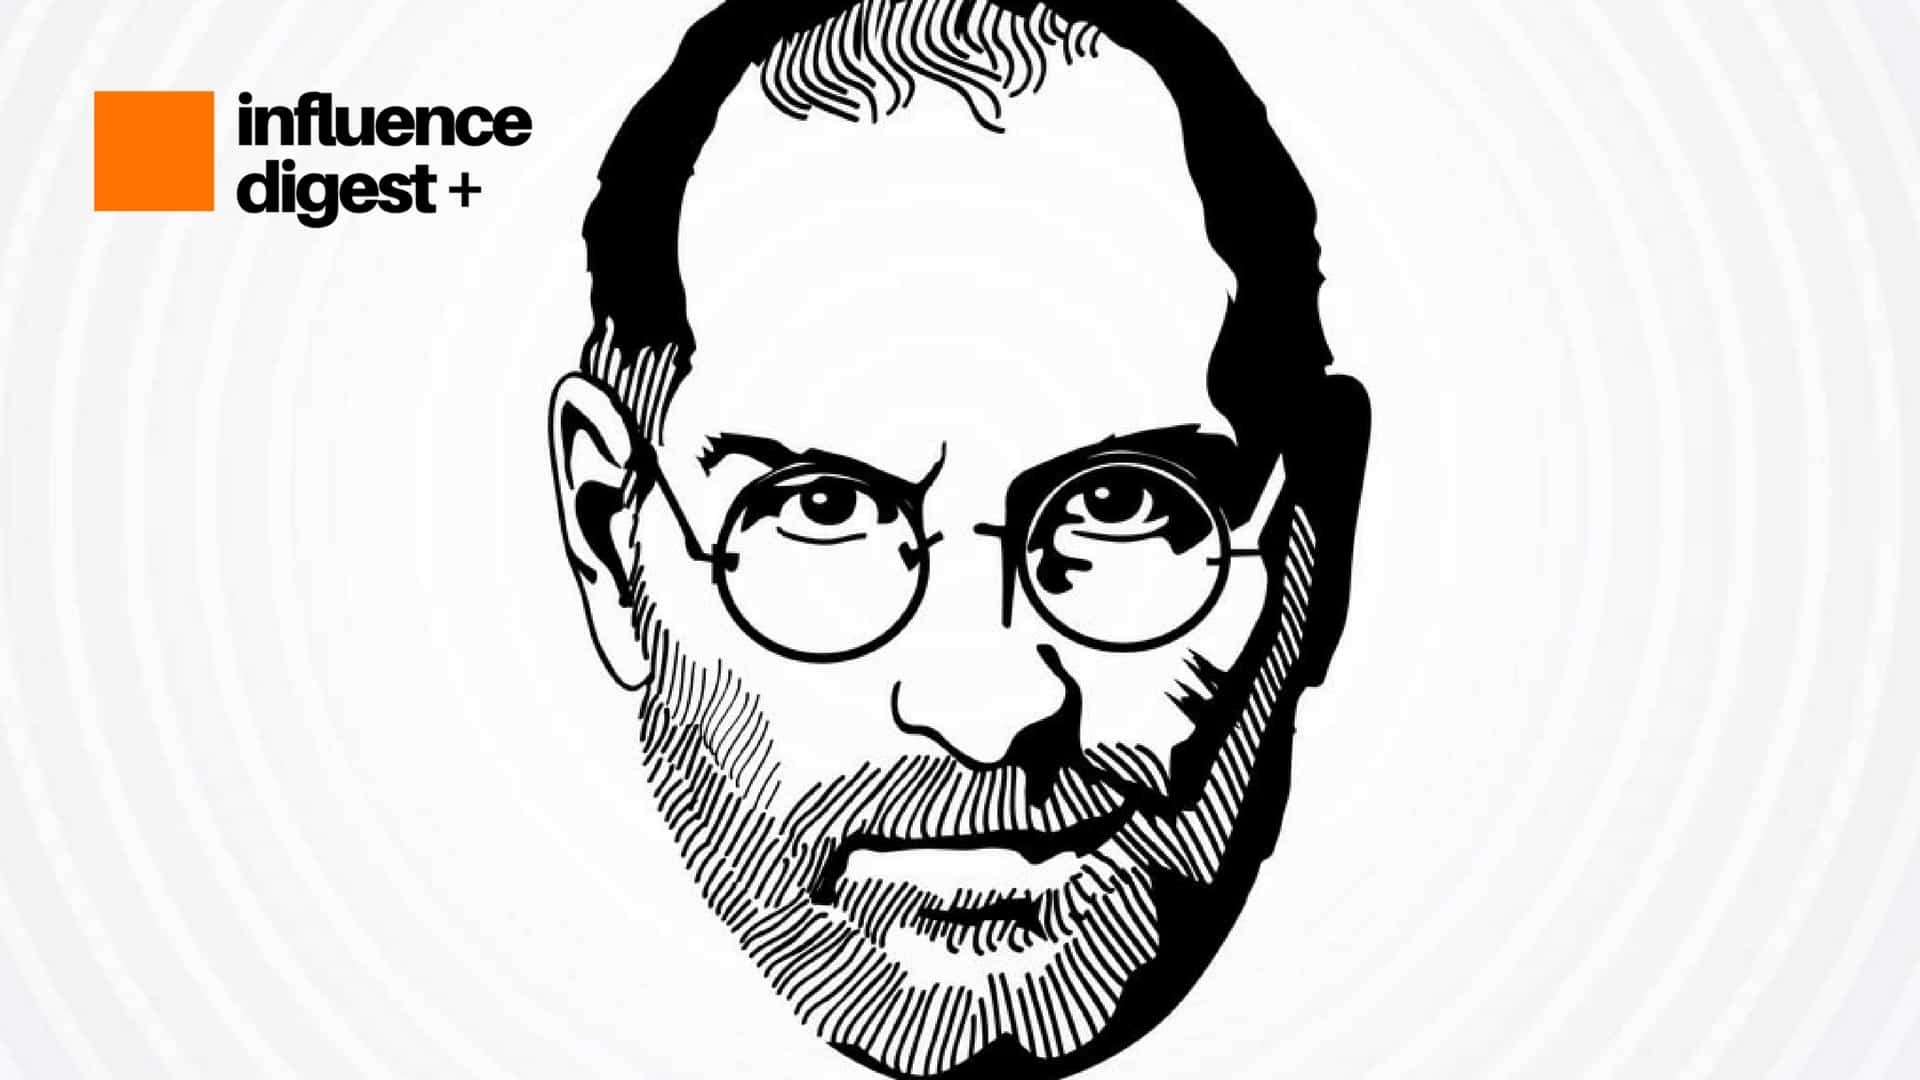 The Morning Routine of Steve Jobs